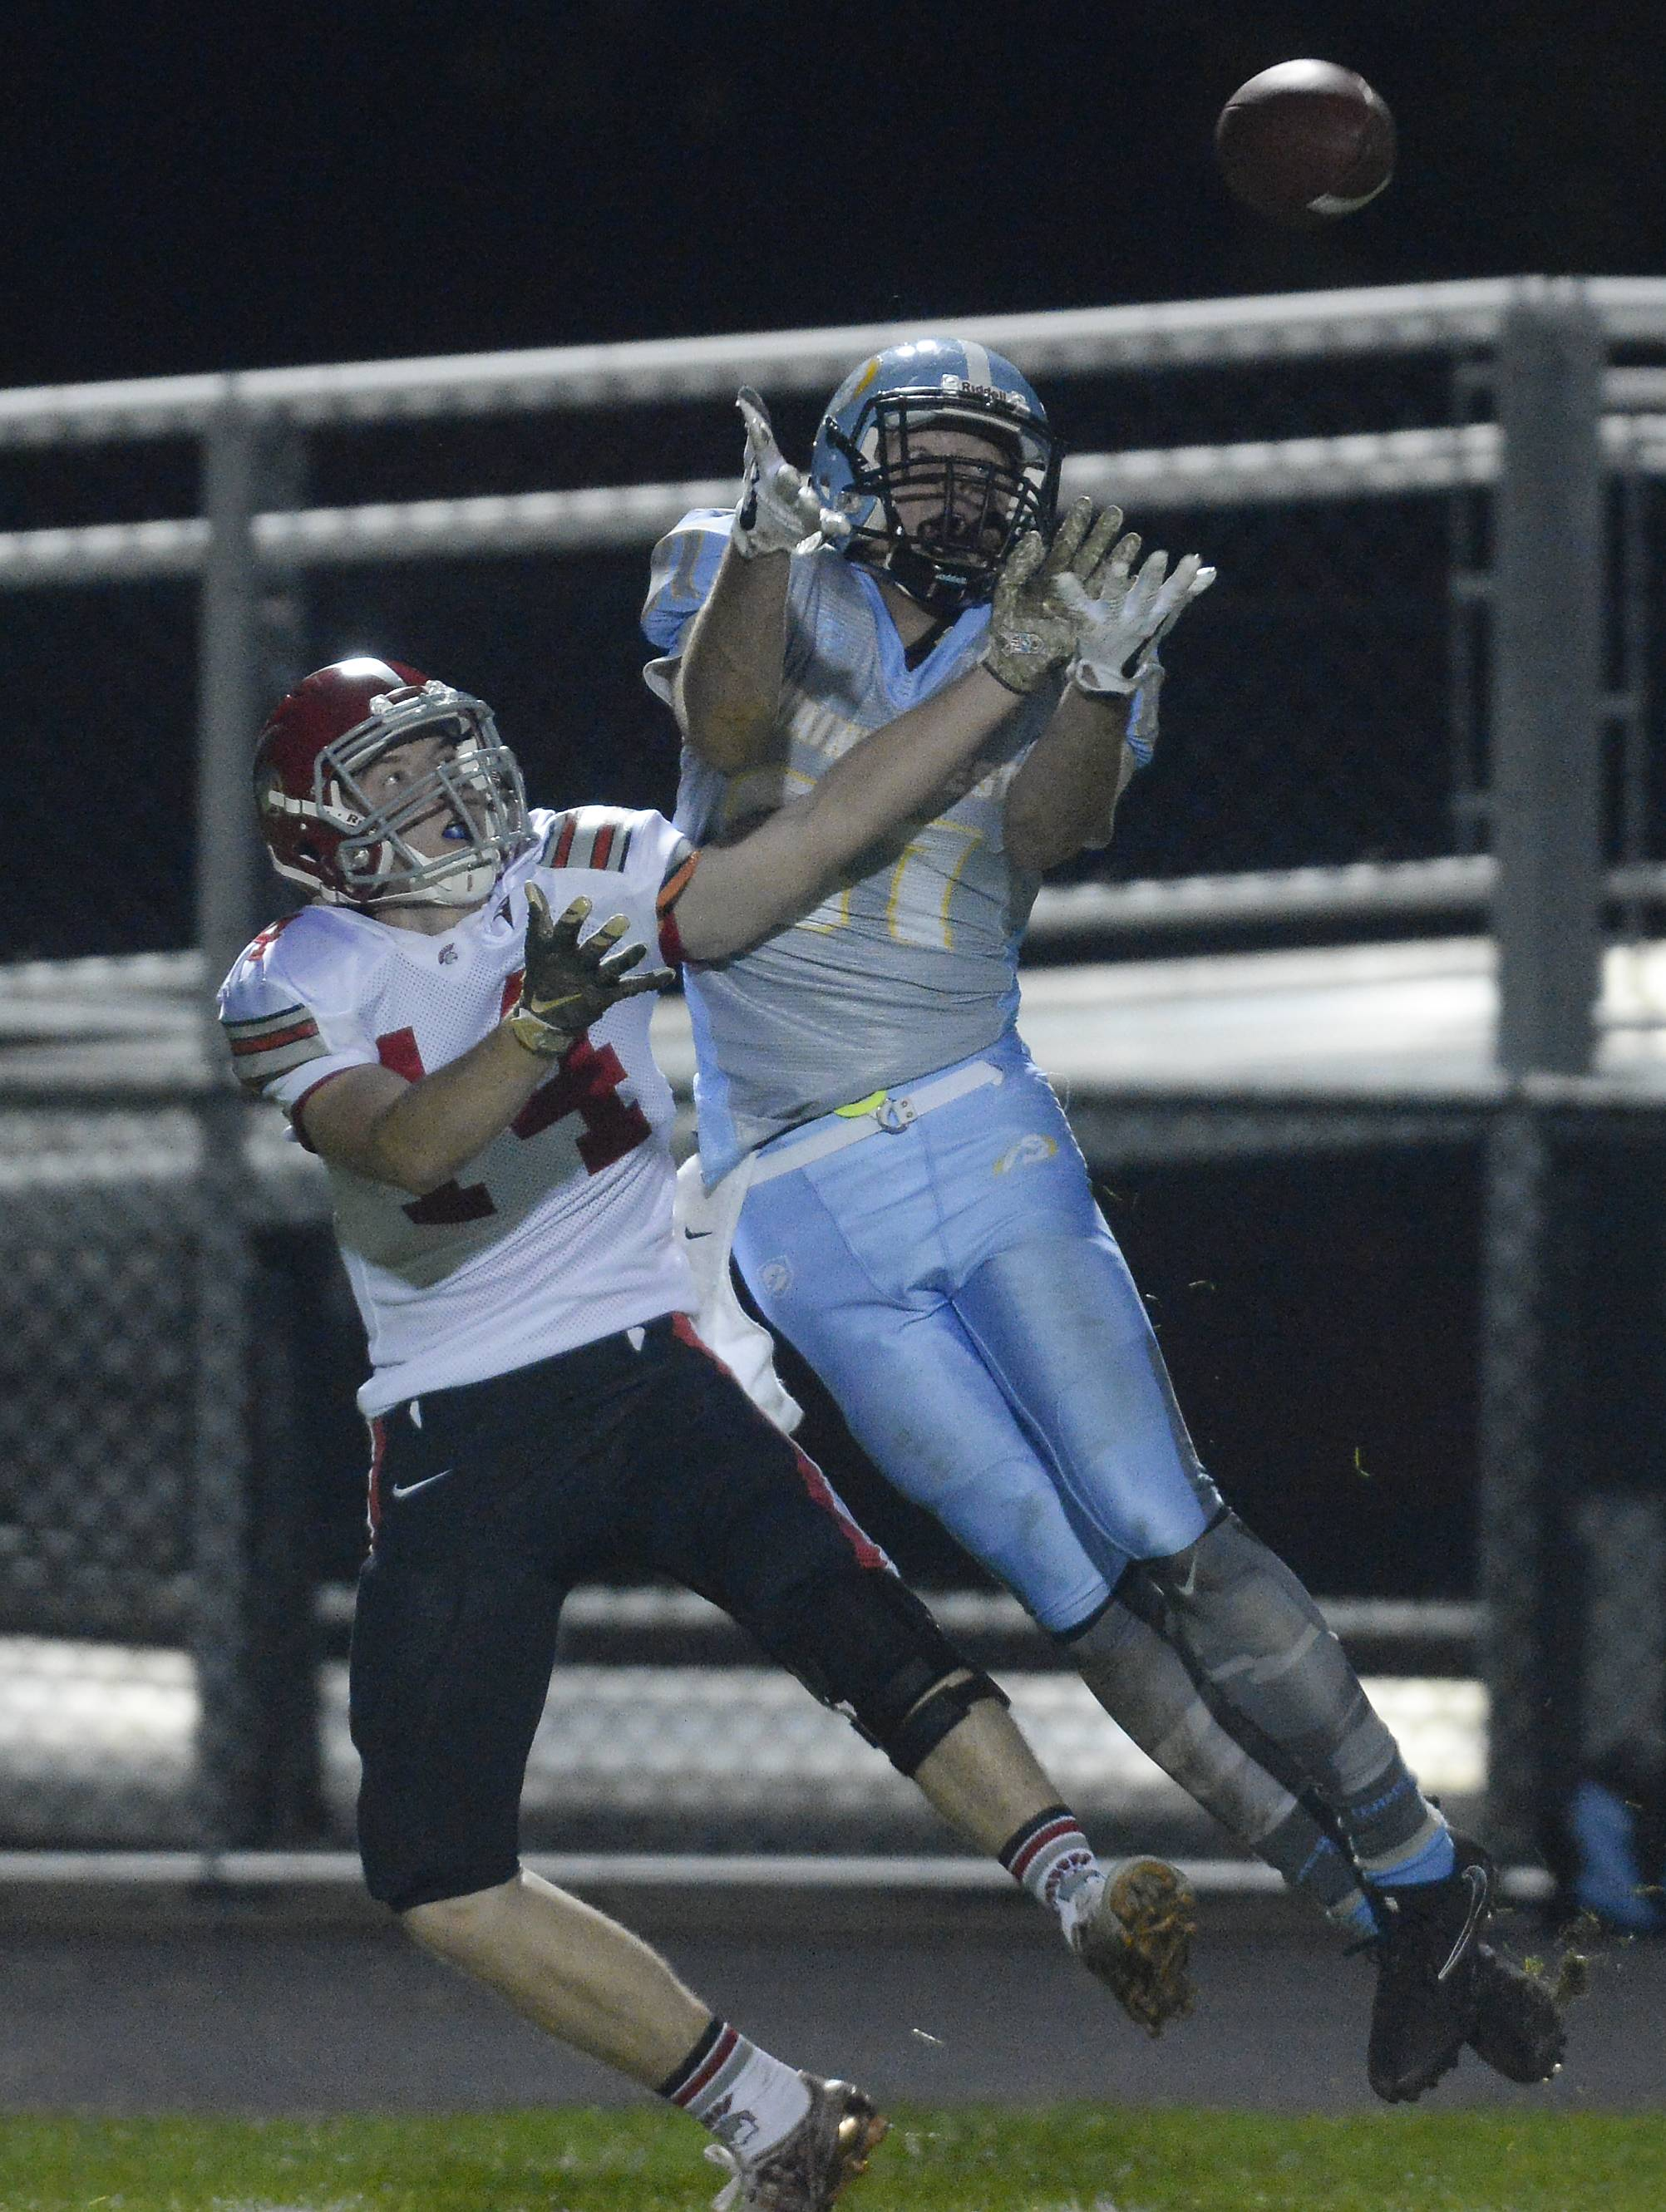 Maine West's Matt Kentgen battles Deerfield's Tyler Crann on a pass that was incomplete in the second quarter at Maine West on Friday.